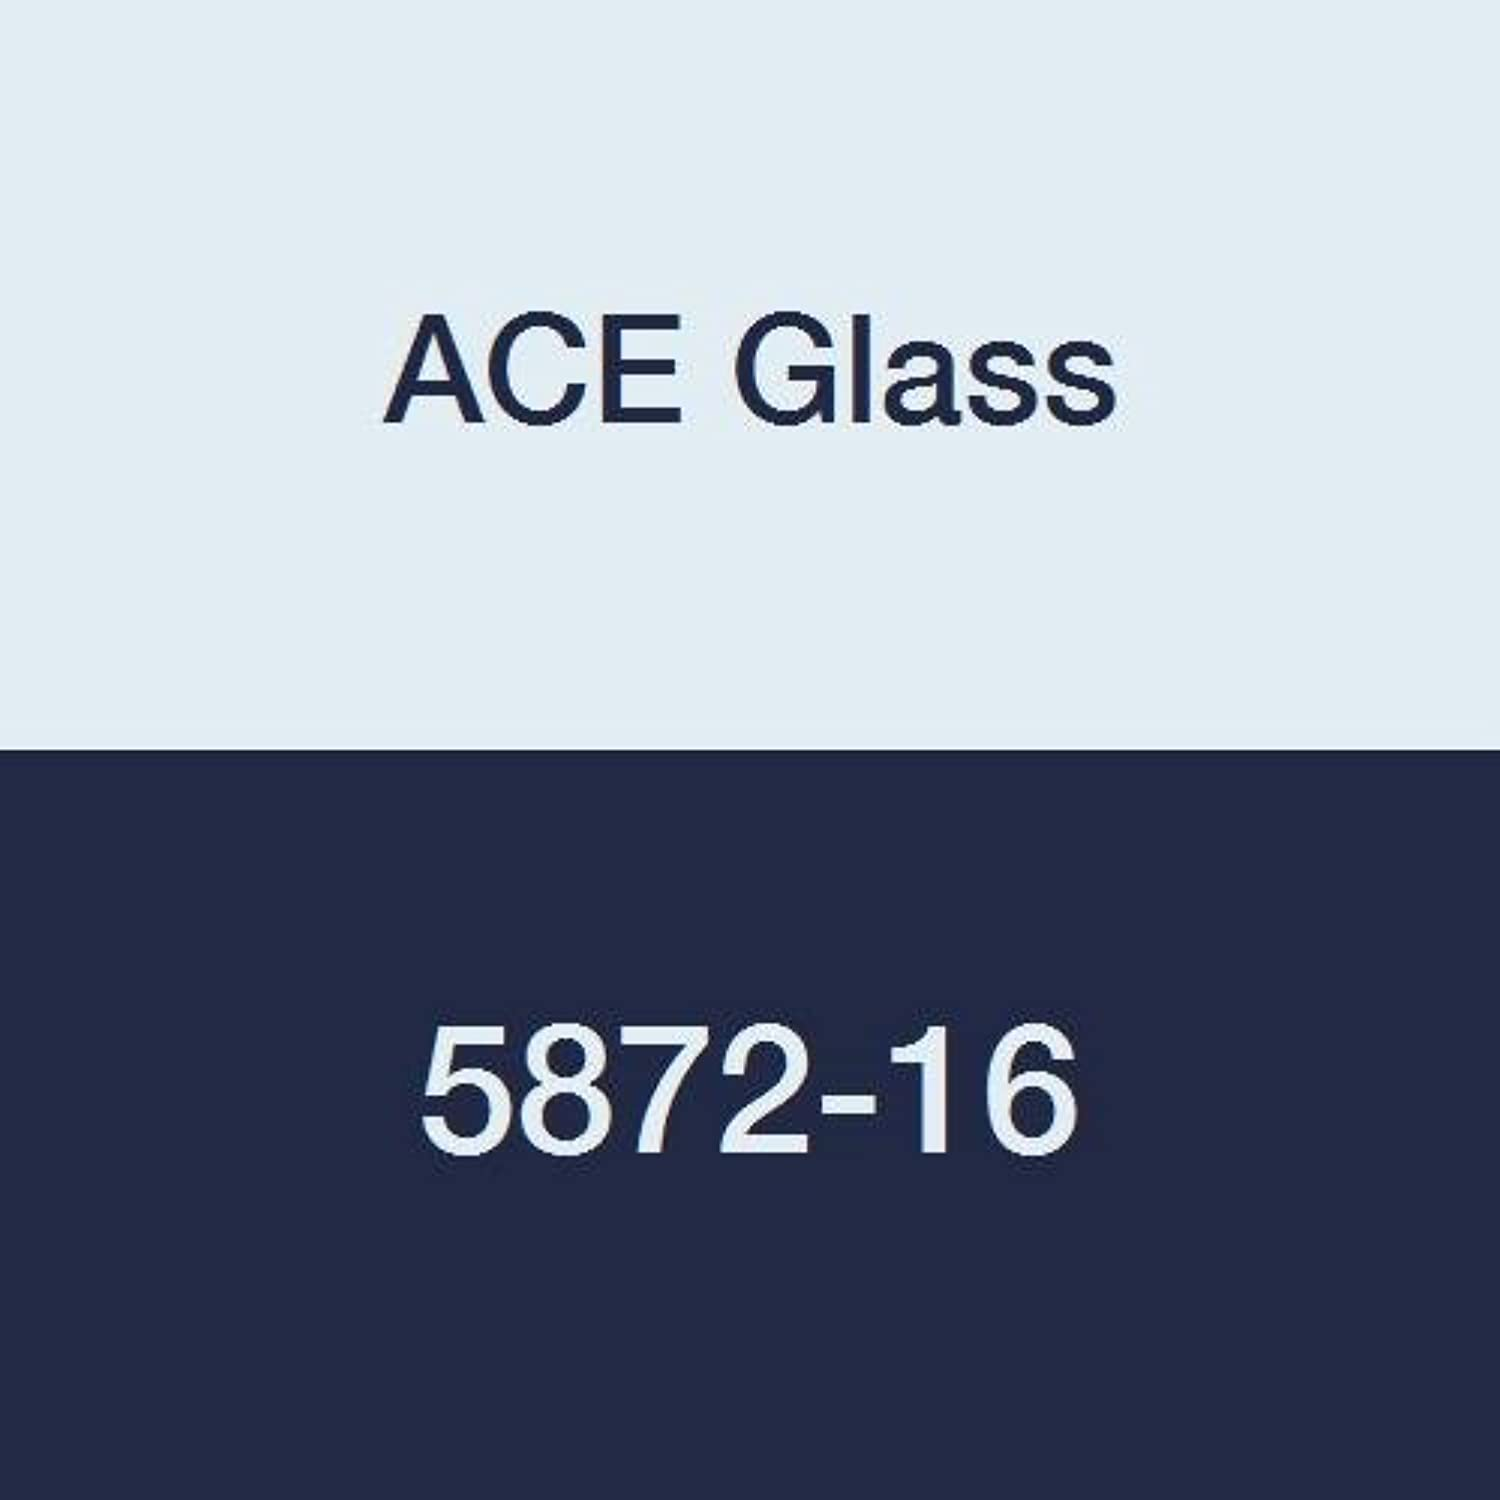 ACE GLASS 5872-16 Series 35 20 Epoxy Coated Flash Chromatography Column, 25 mm ID, 18  Length